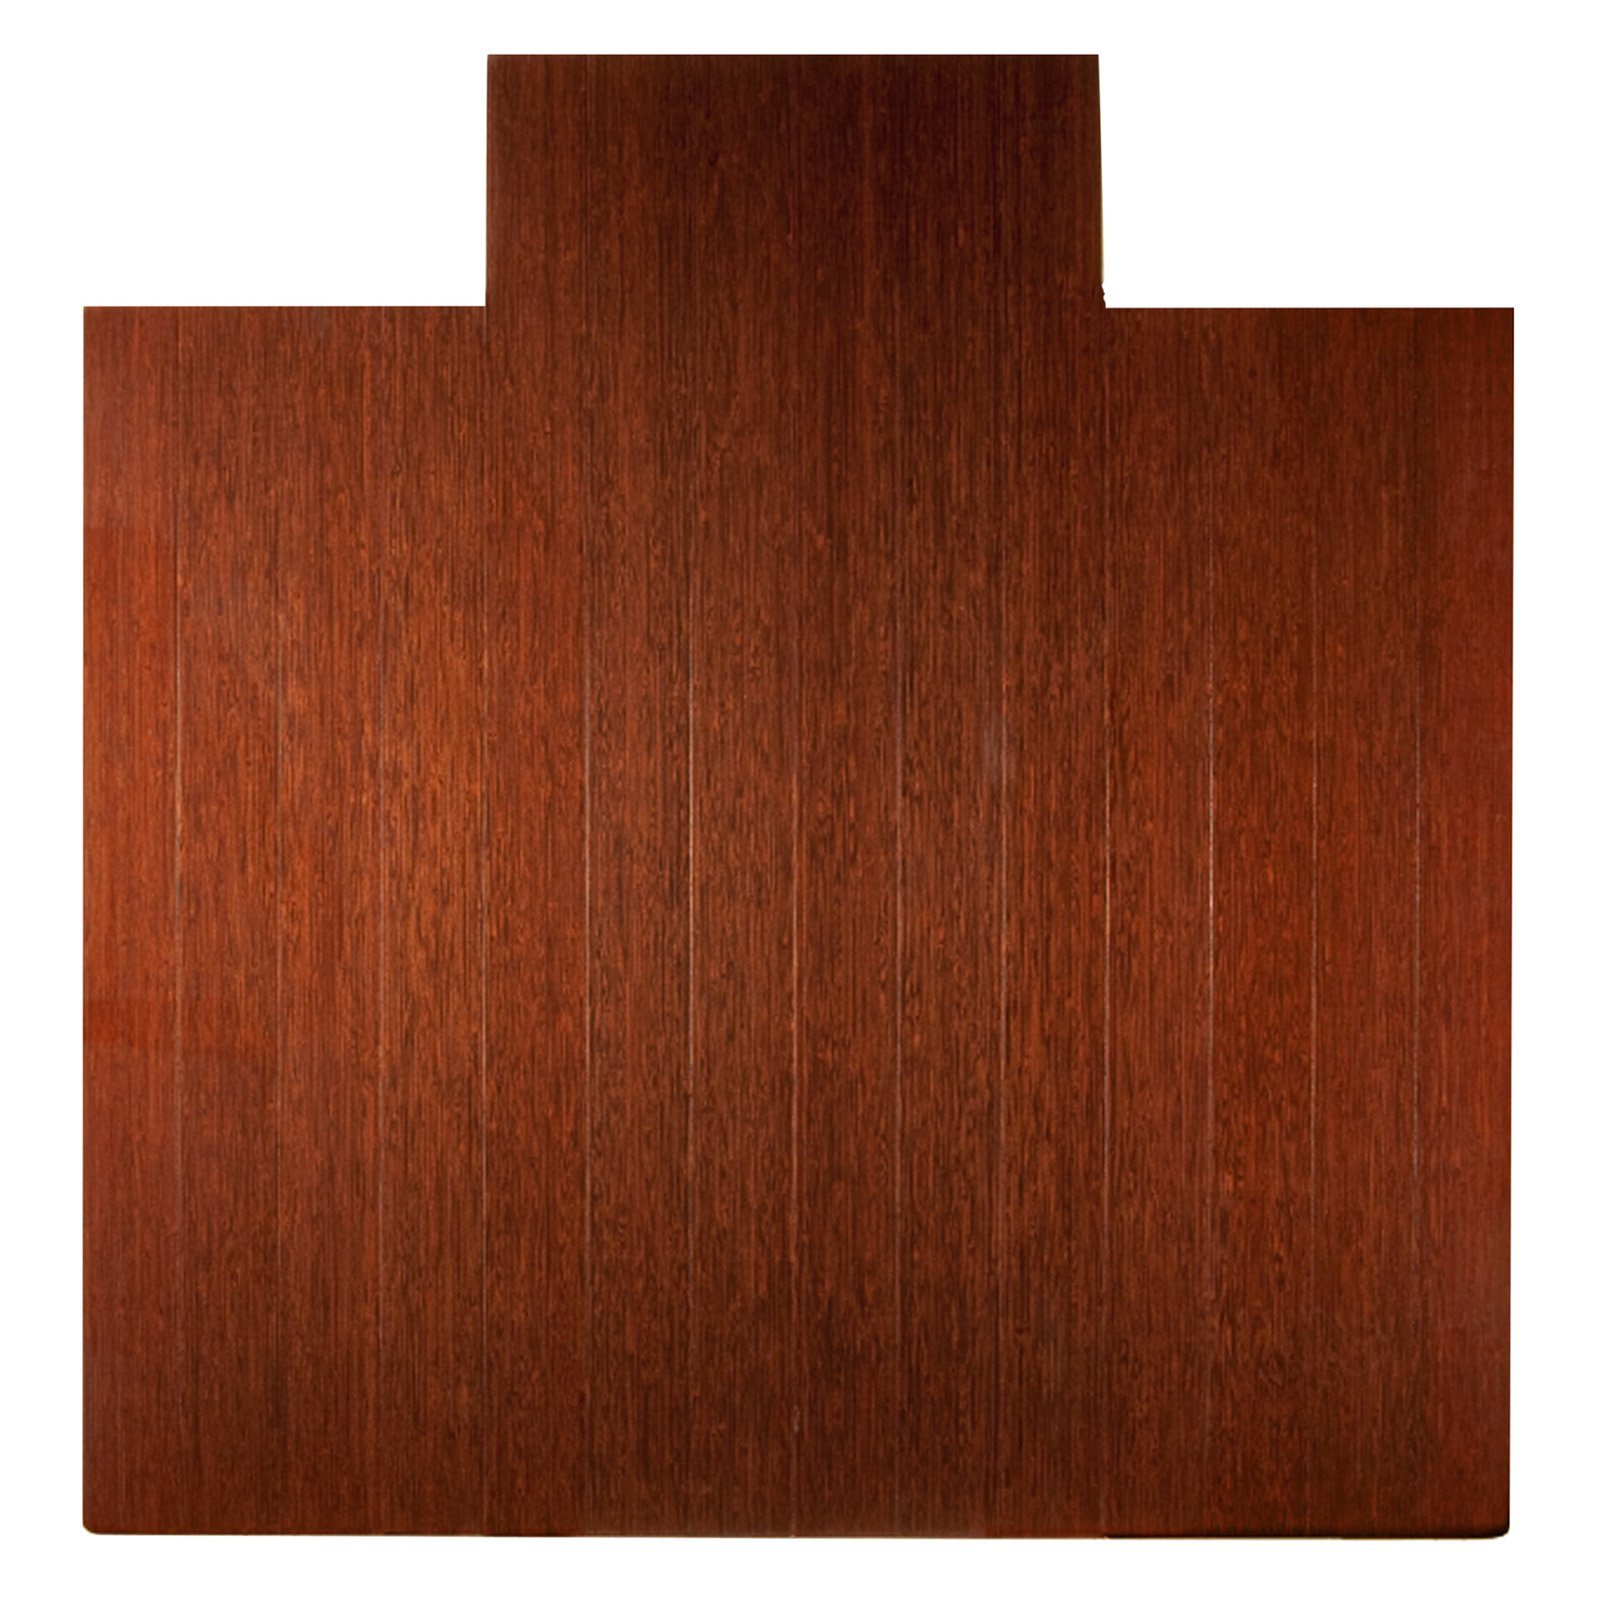 "Bamboo Deluxe Roll-Up Chairmat, No Lip-Color:Dark Cherry,Size:60""L x 48""W"